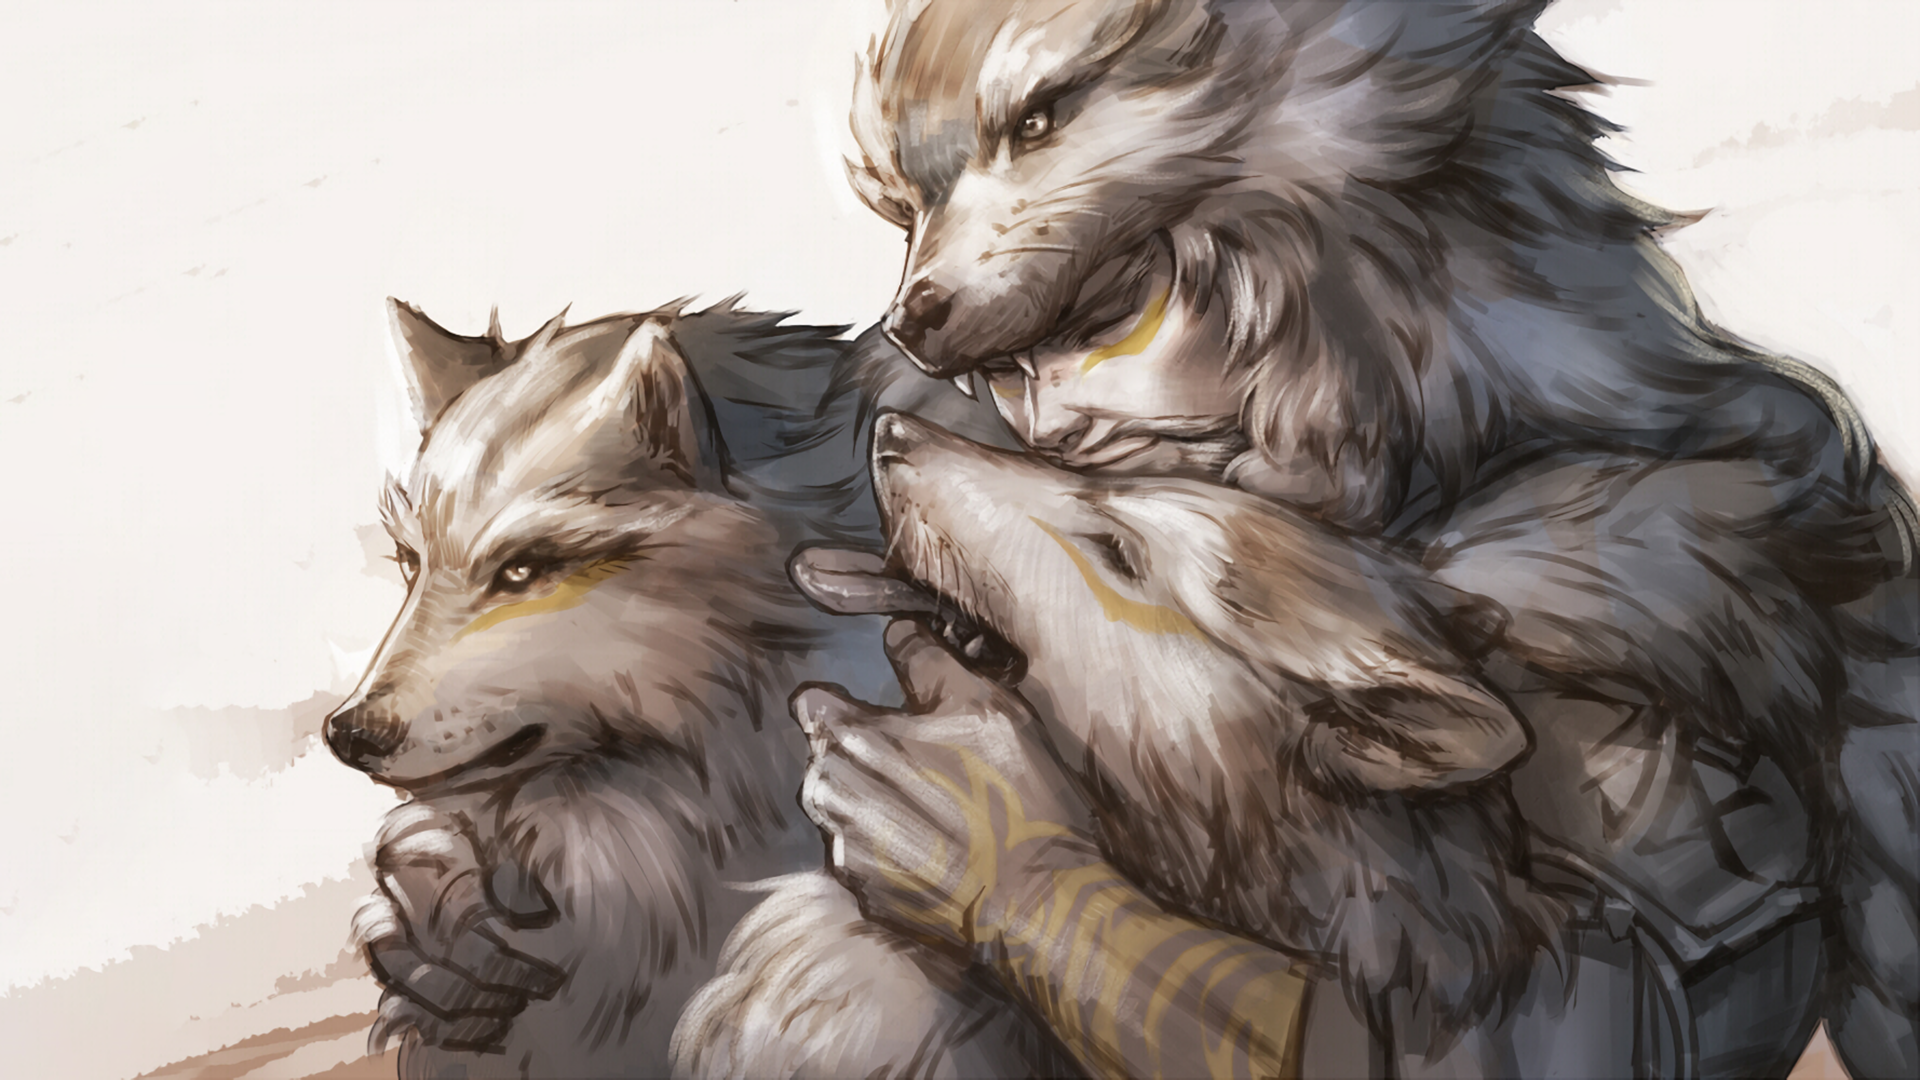 Hanzo with hiswolves 1920x1080 HD Wallpaper From